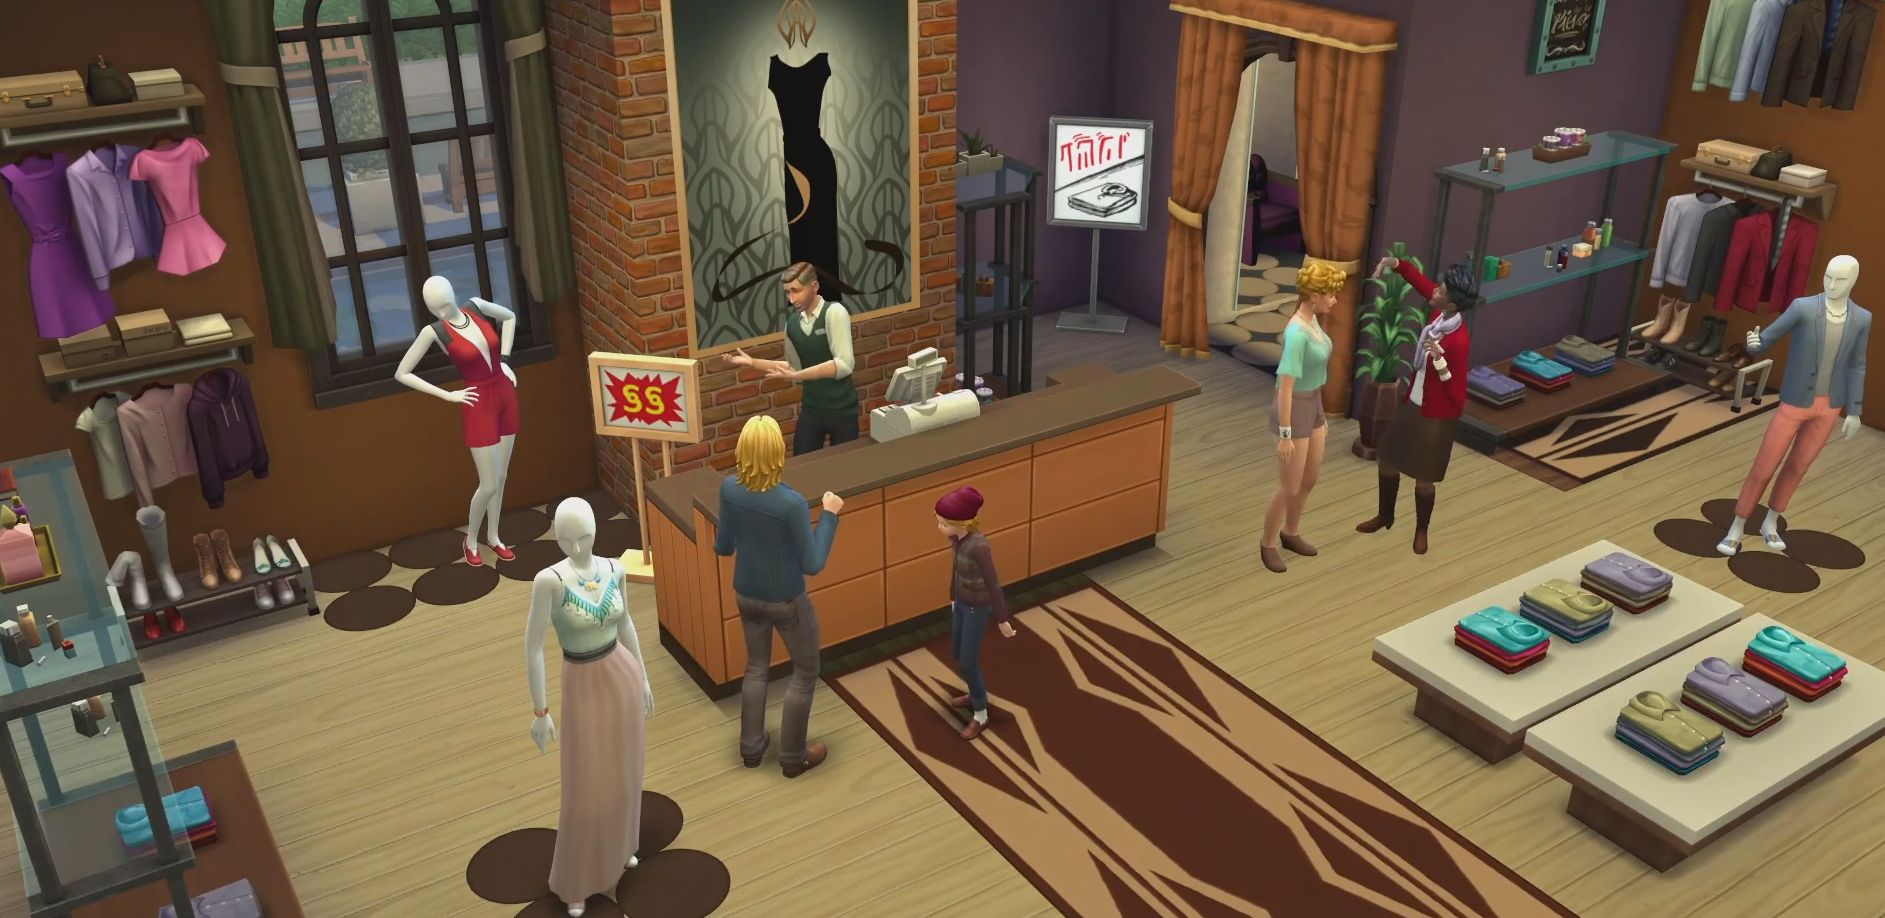 The Sims 4 Get to Work Expansion Pack